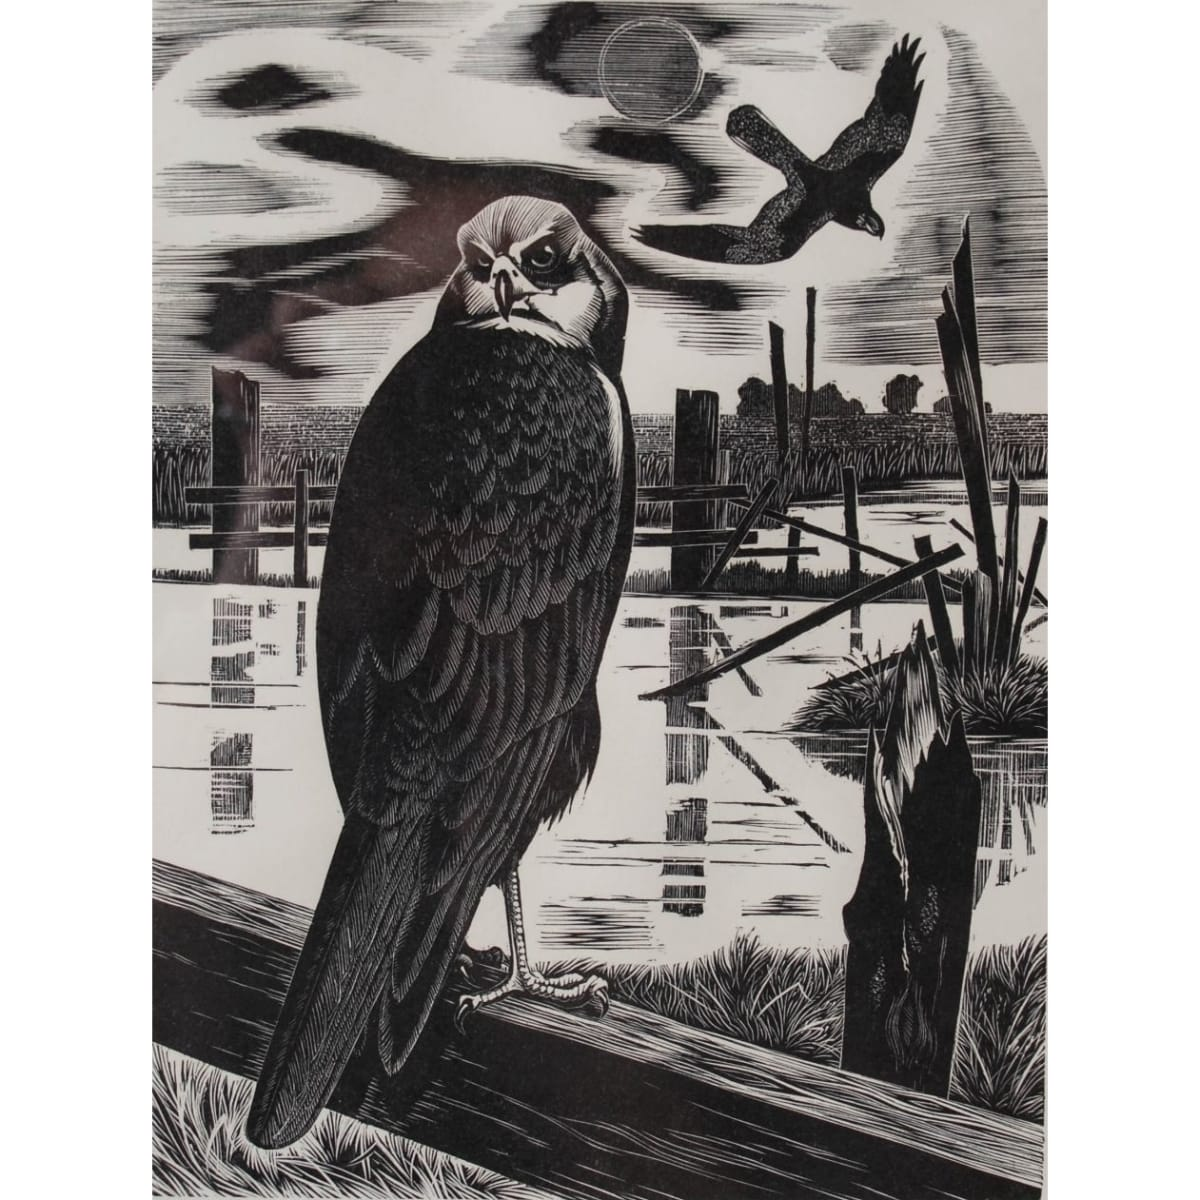 George William Lennox Paterson Hen Harrier signed, titled and numbered 7/100 in pencil to margin woodcut 7 3/4 x 6 inches